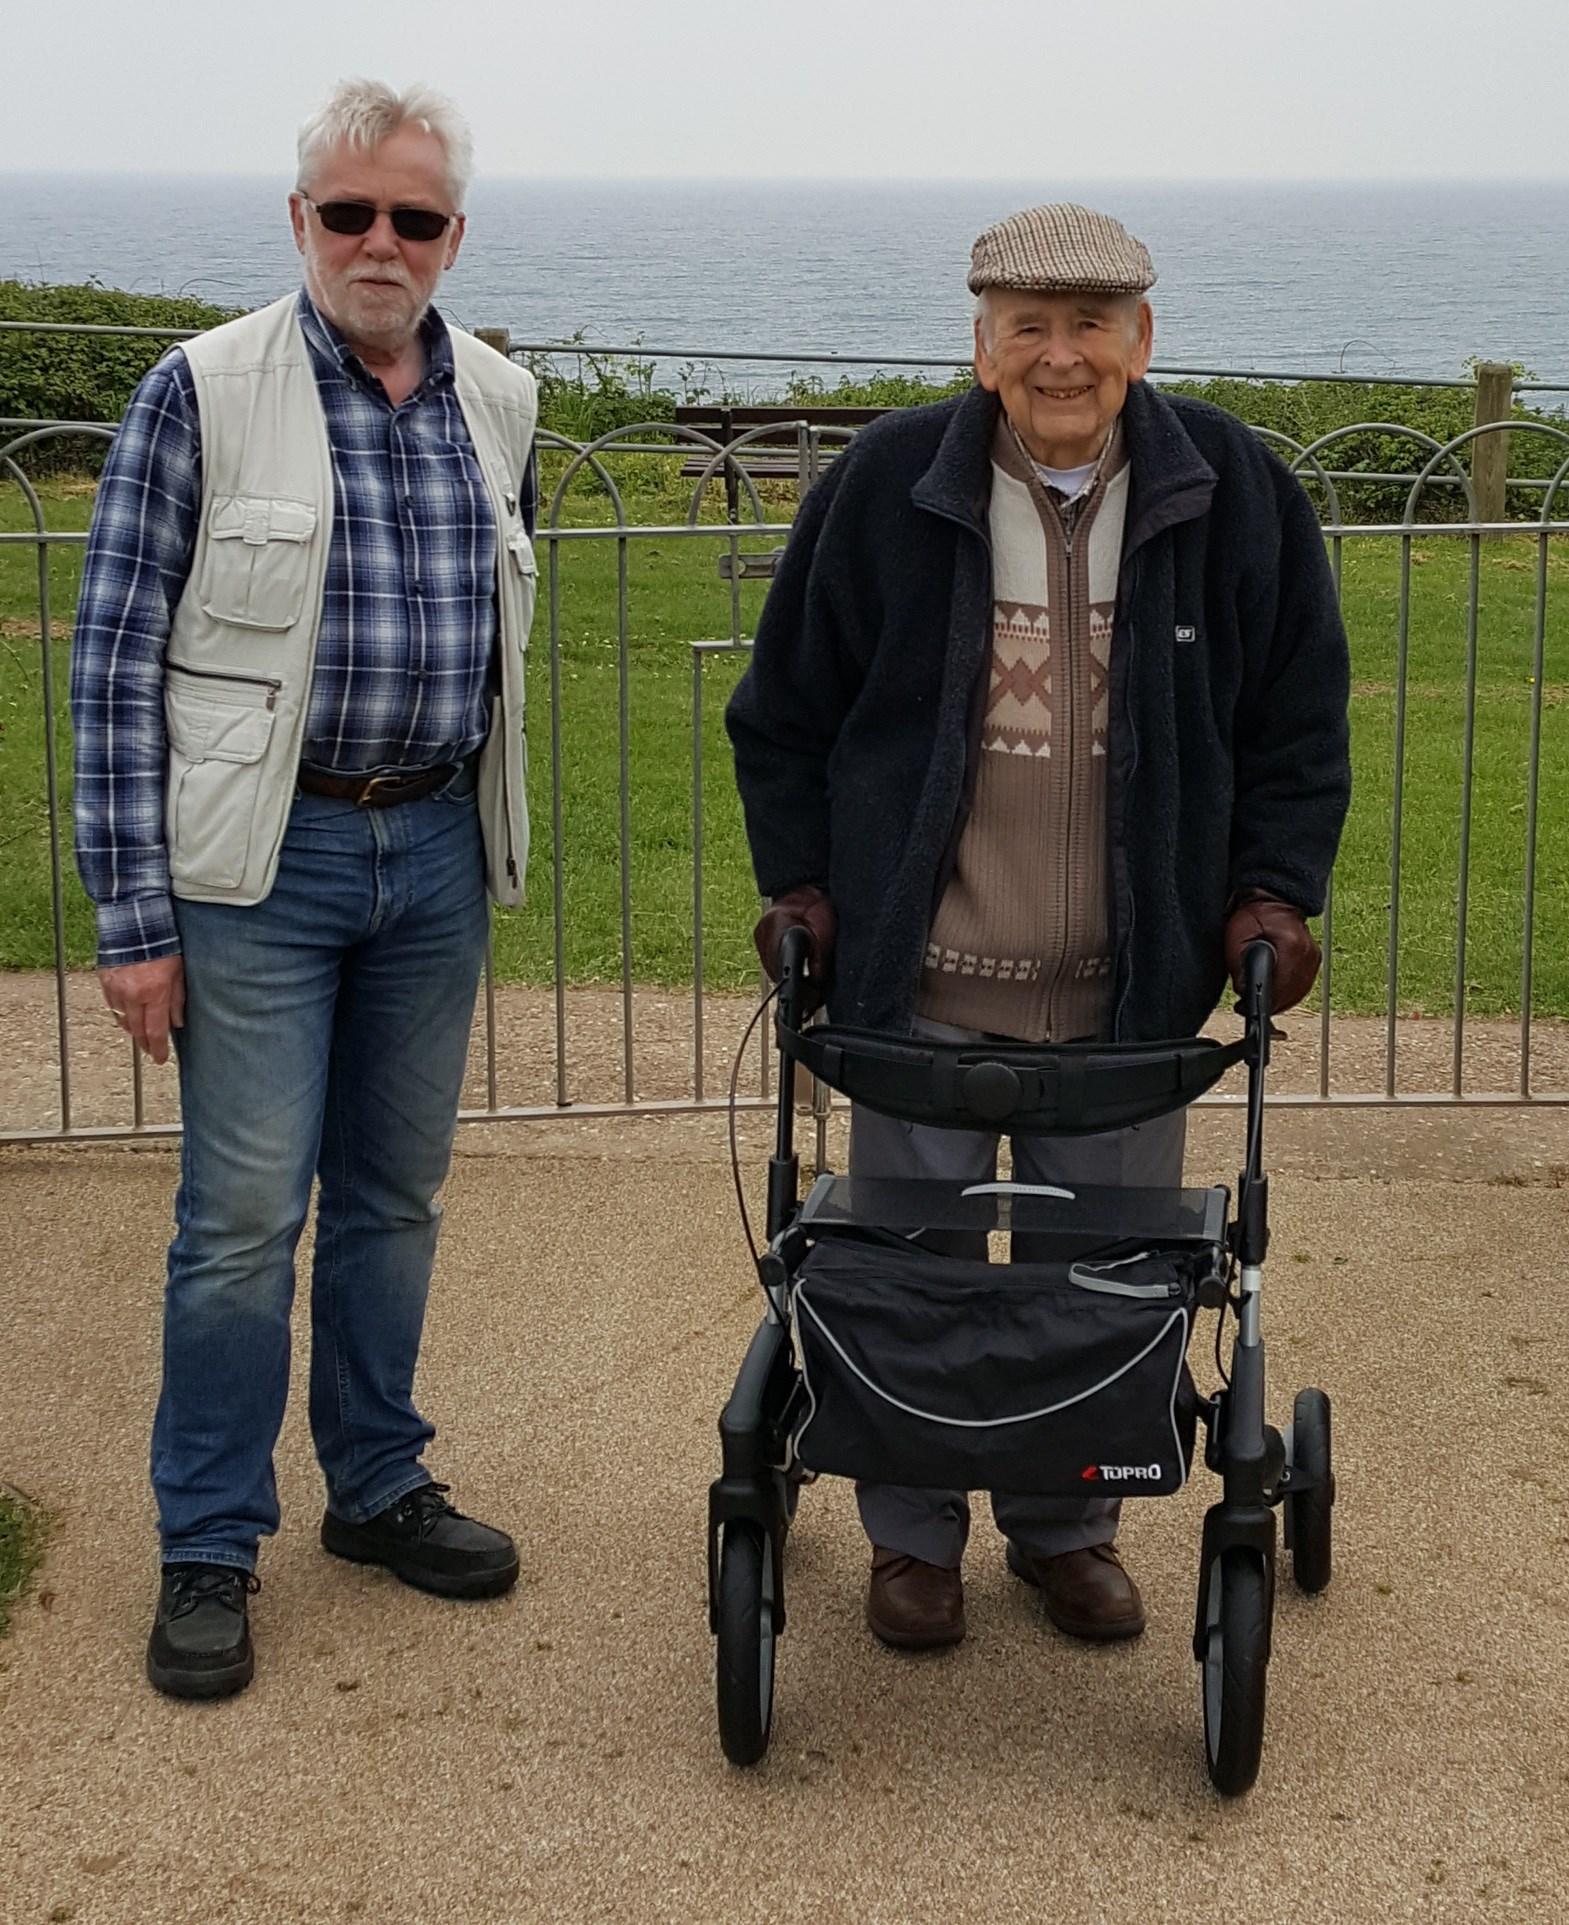 Dad and Ken walking in the park